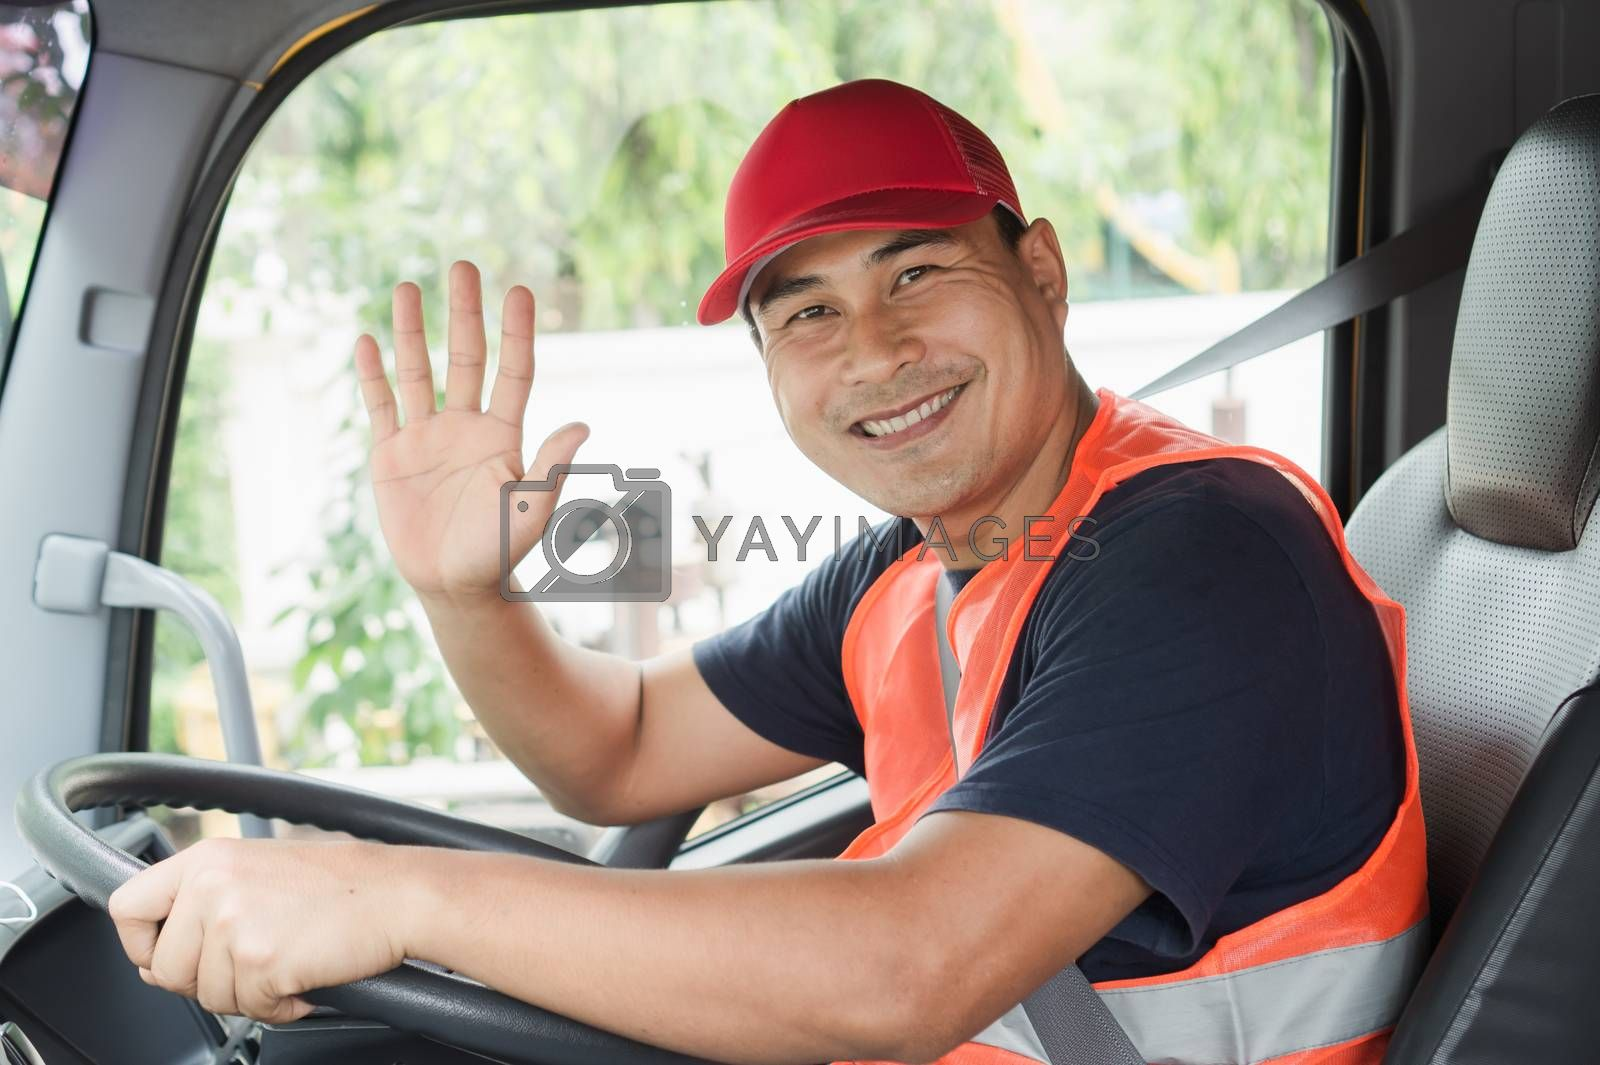 Professional worker truck driver, confident middle-aged Asian man wearing safety clothing Smile proudly In moving forward For a long transportation business